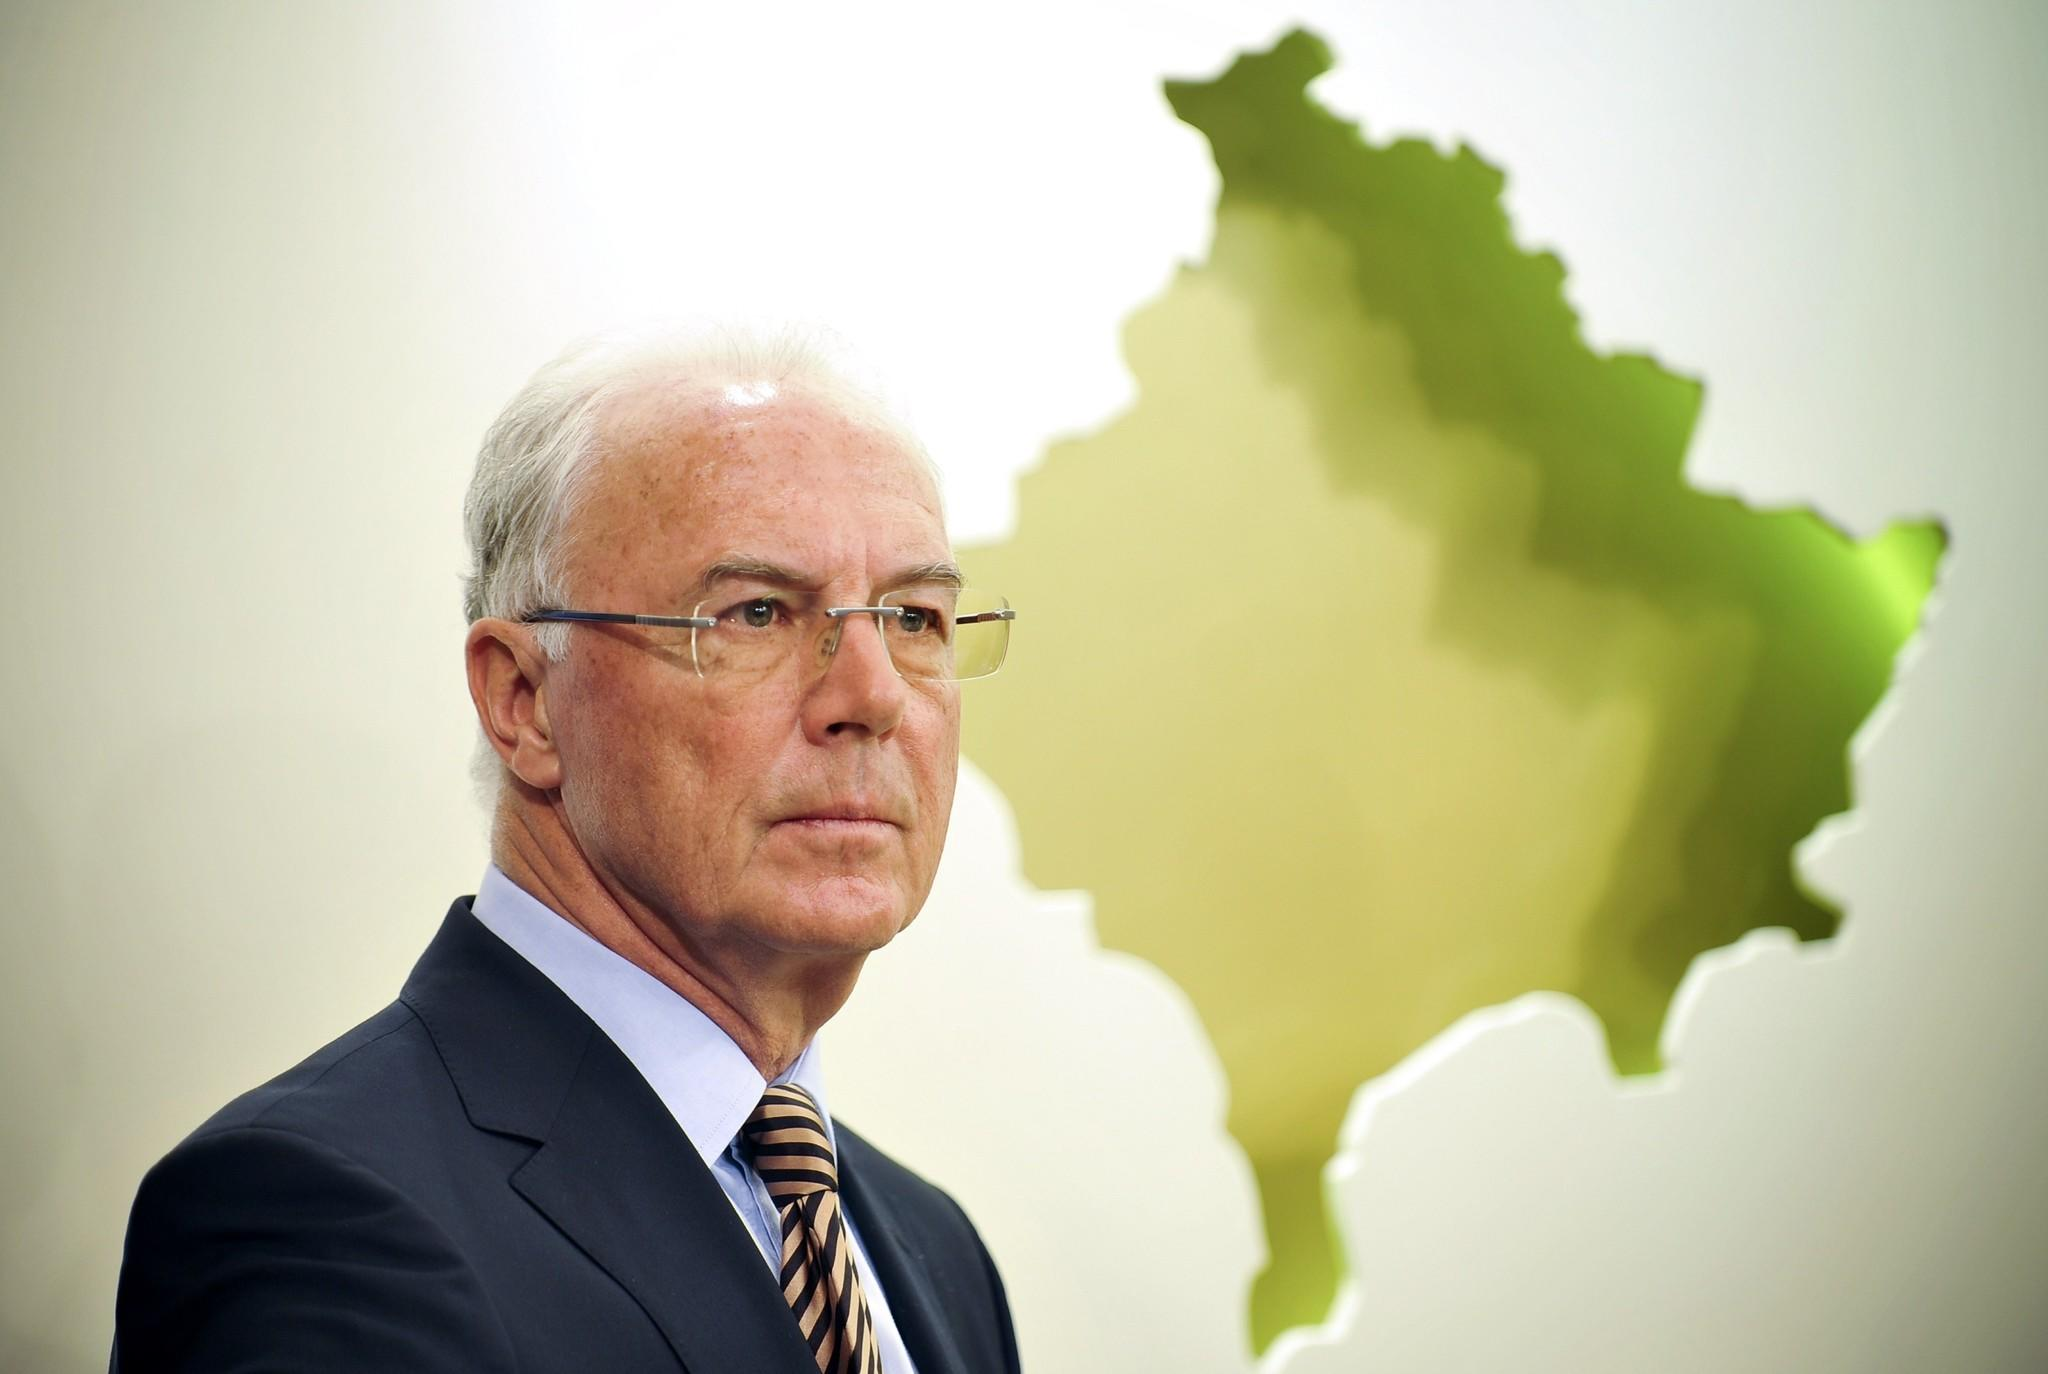 A file picture taken in Pristina on March 4, 2011 shows German football legend and FIFA executive committee member Franz Beckenbauer giving a press conference. FIFA banned German football legend Franz Beckenbauer from any football-related activity for 90 days on June 13, 2014, after he refused to speak to an inquiry into allegations that Qatar paid bribes to secure votes for its 2022 World Cup bid.